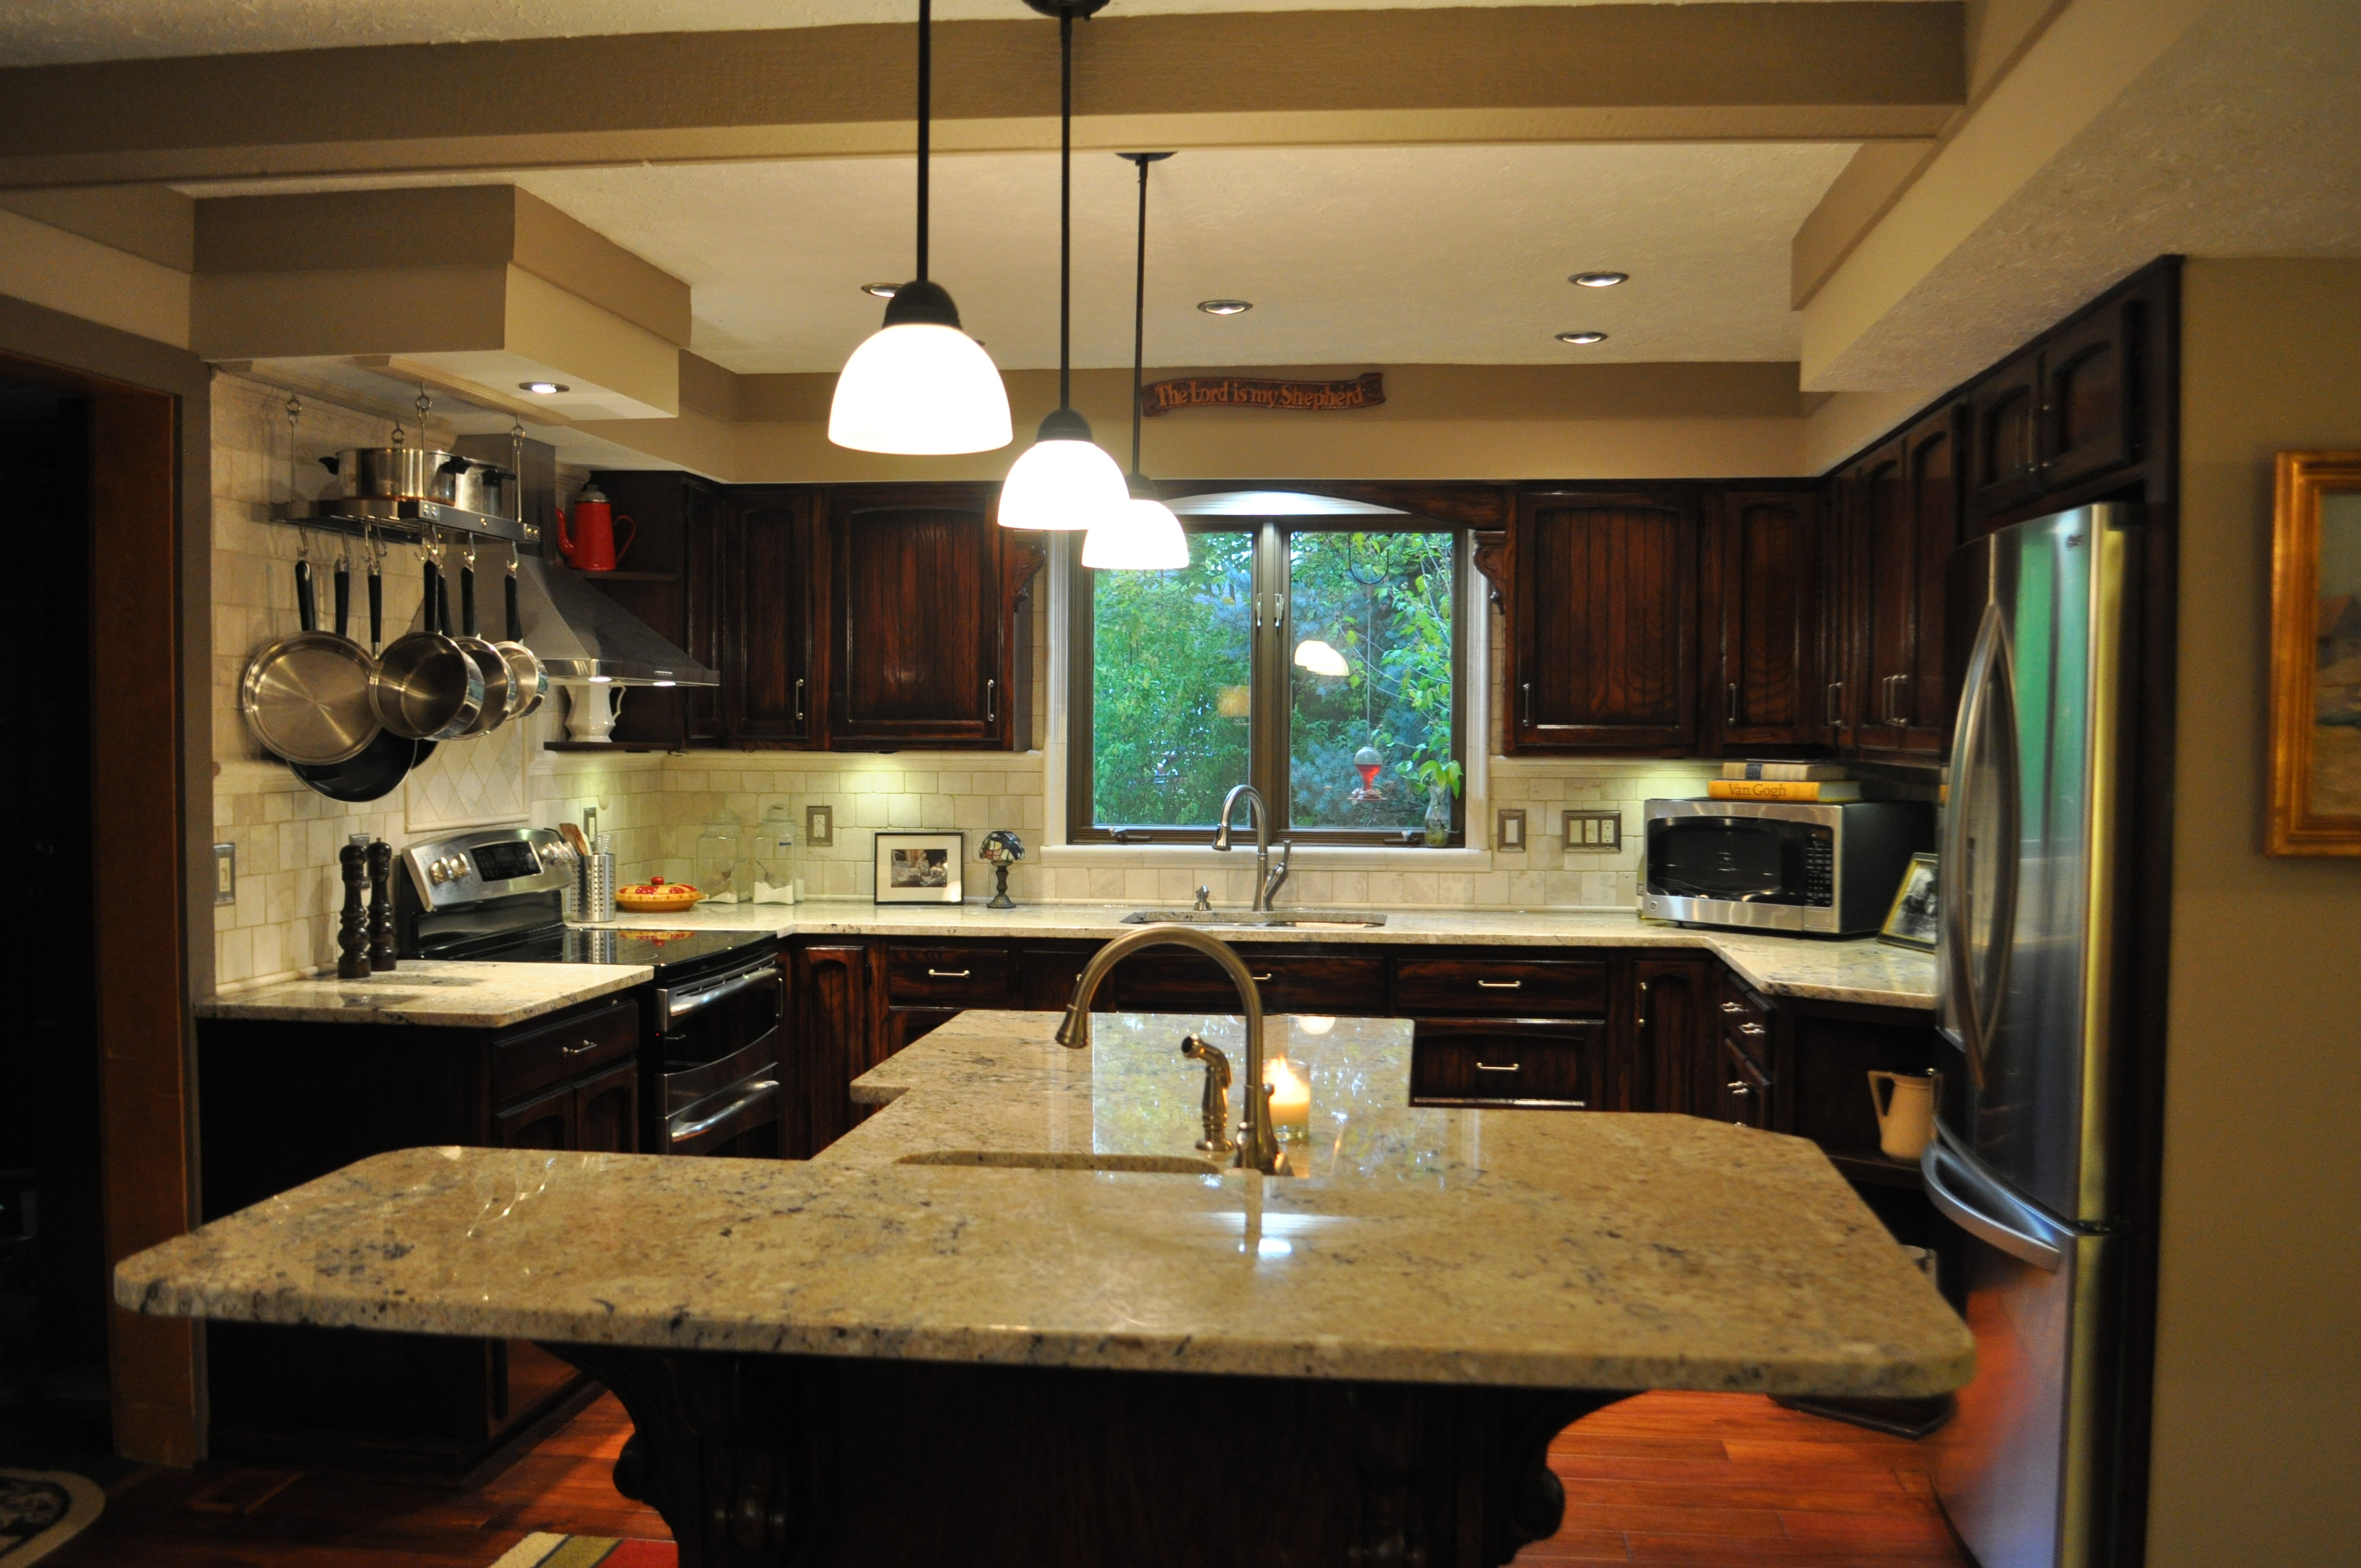 5 Favorite Types of Granite Countertops for Stunning Kitchen